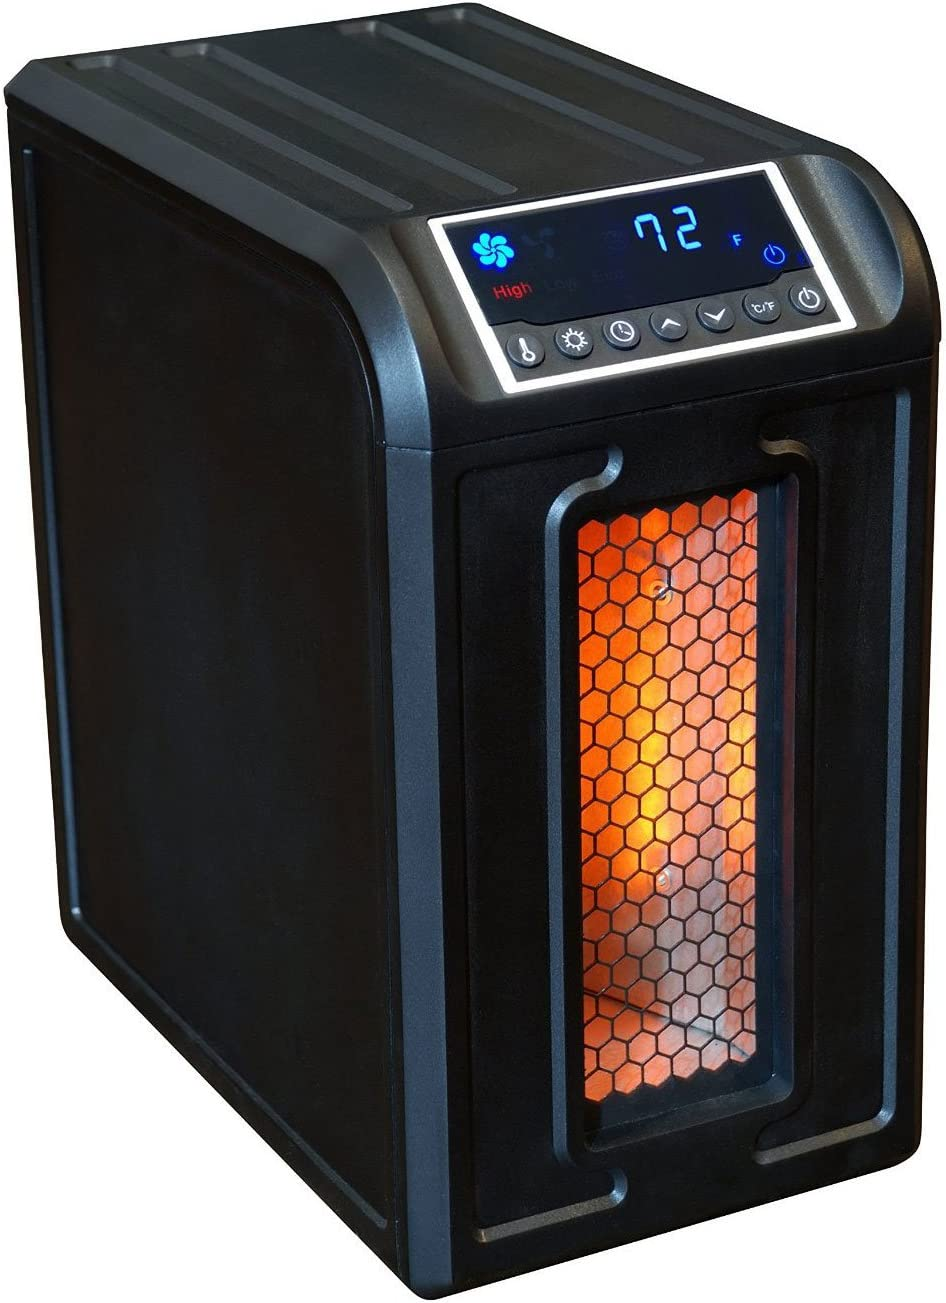 Top 10 Best Infrared Heaters (2020 Reviews & Buying Guide) 6